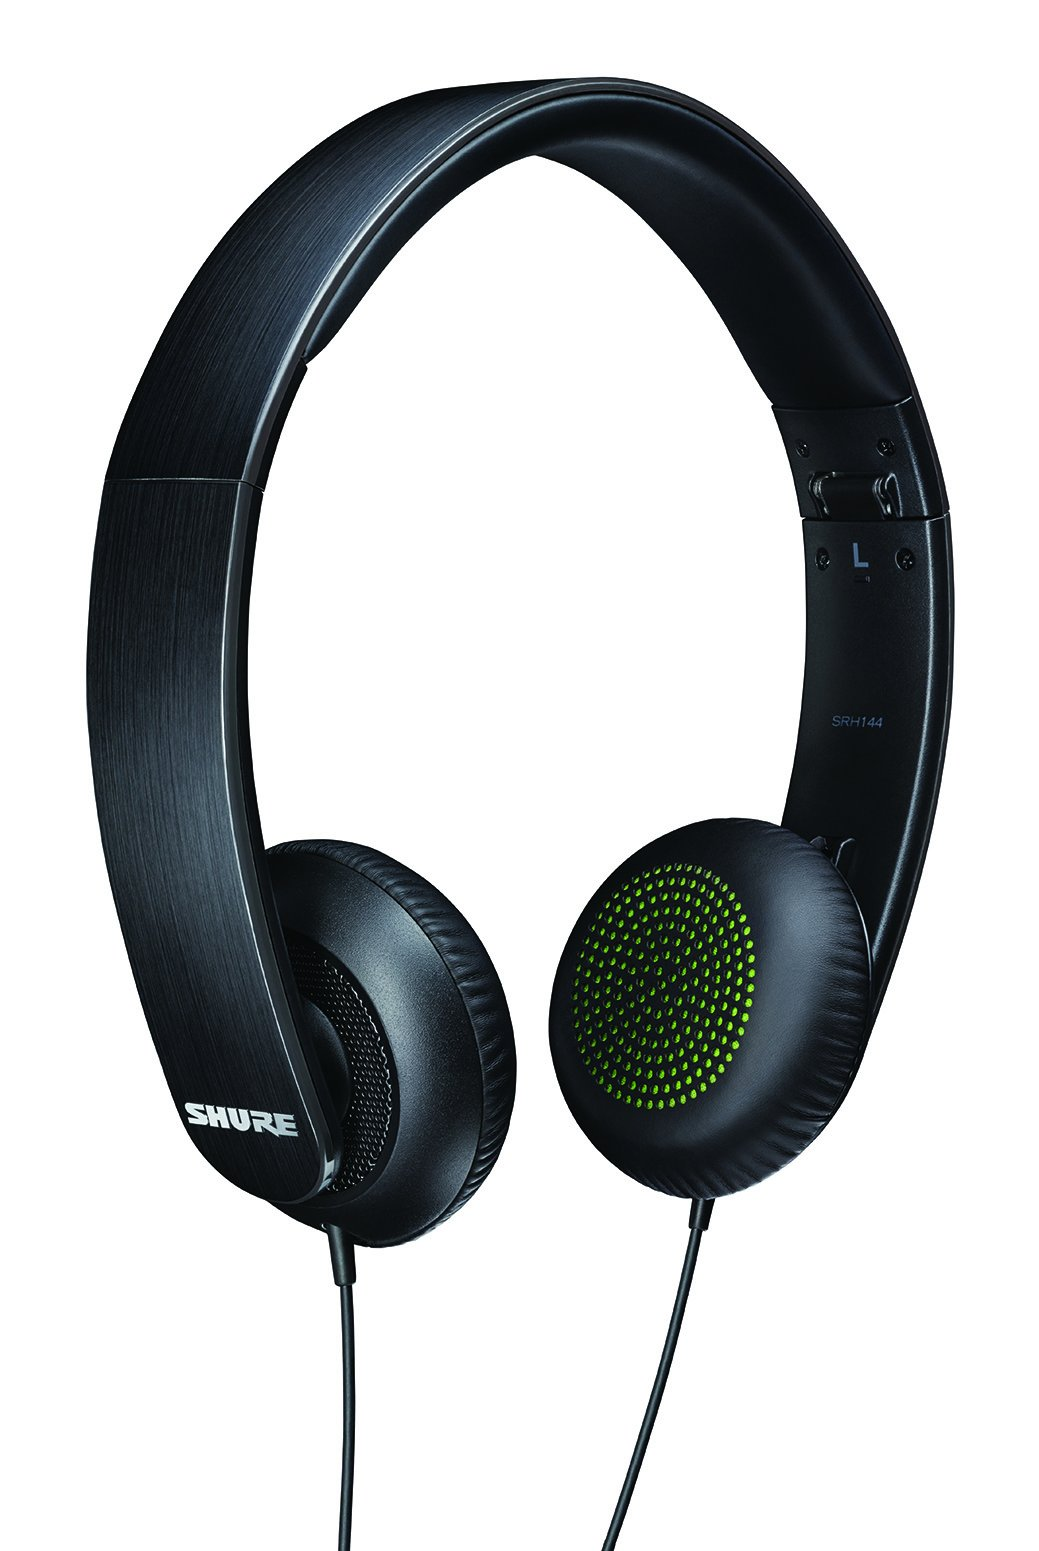 Shure SRH144 Semi-Open Portable Collapsible Headphones by Shure